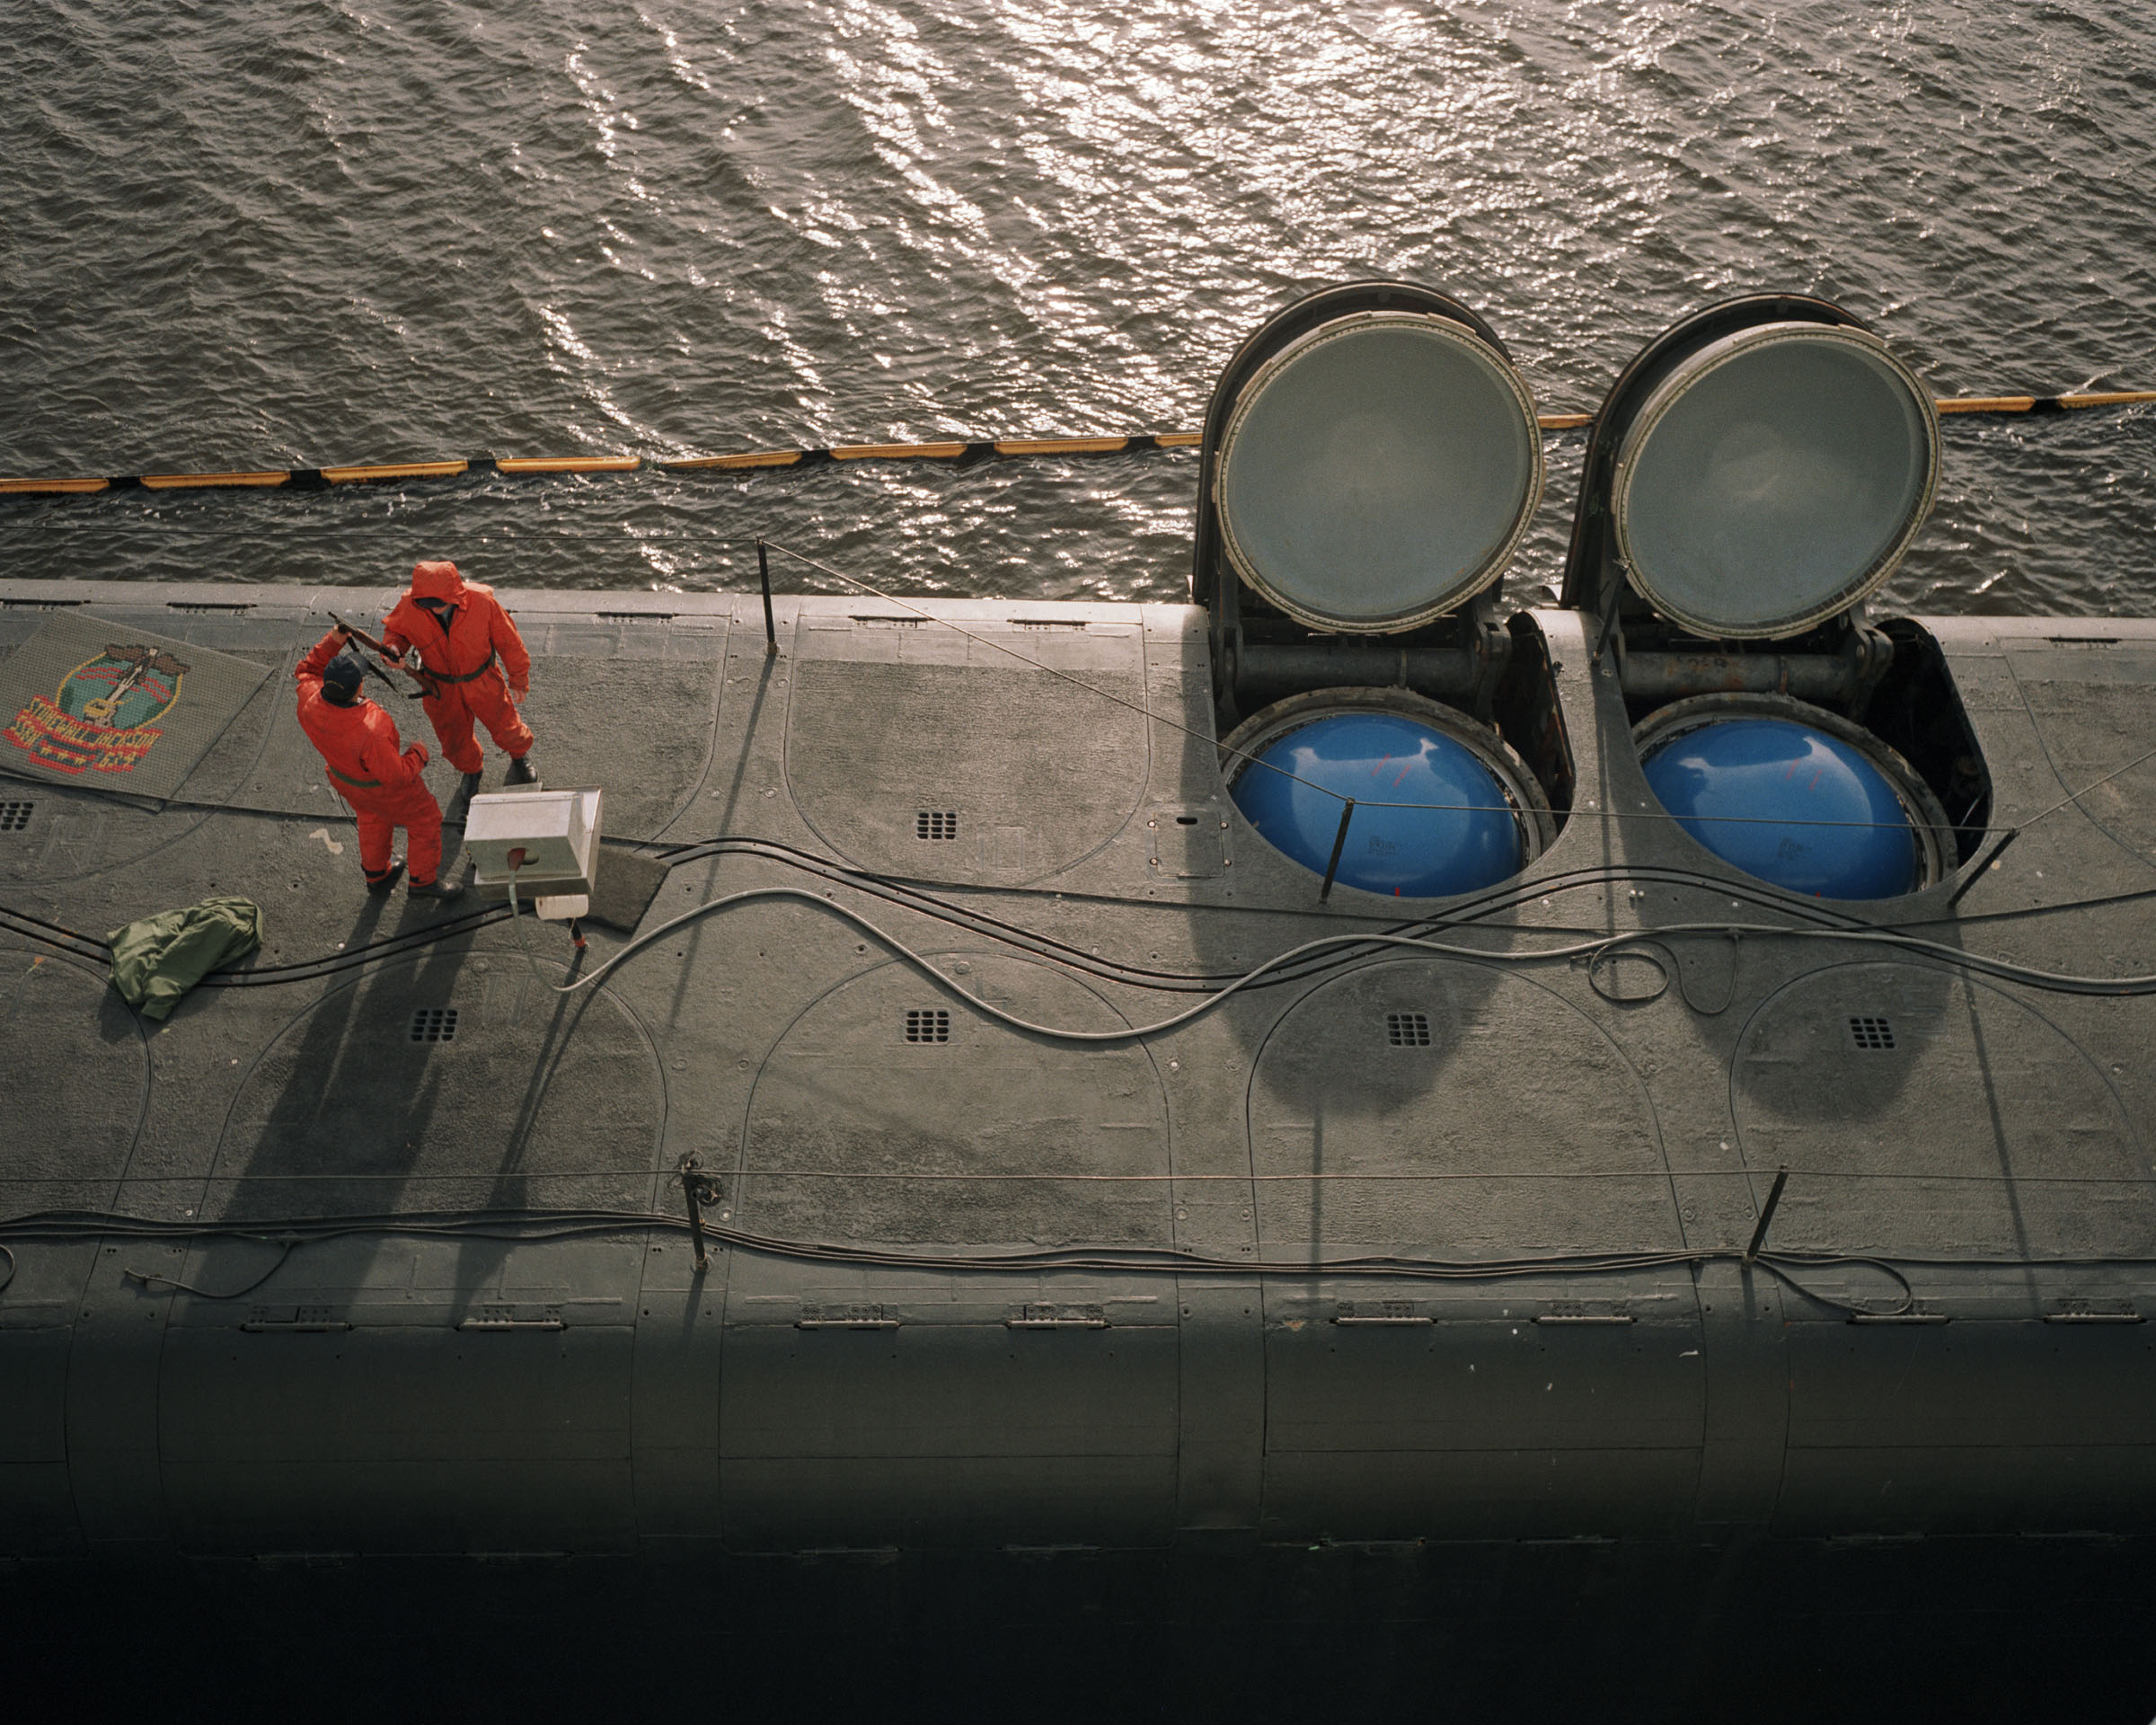 Poseidon missl.tubes, Kings Bay Naval Sub. Base, GA, 1994.